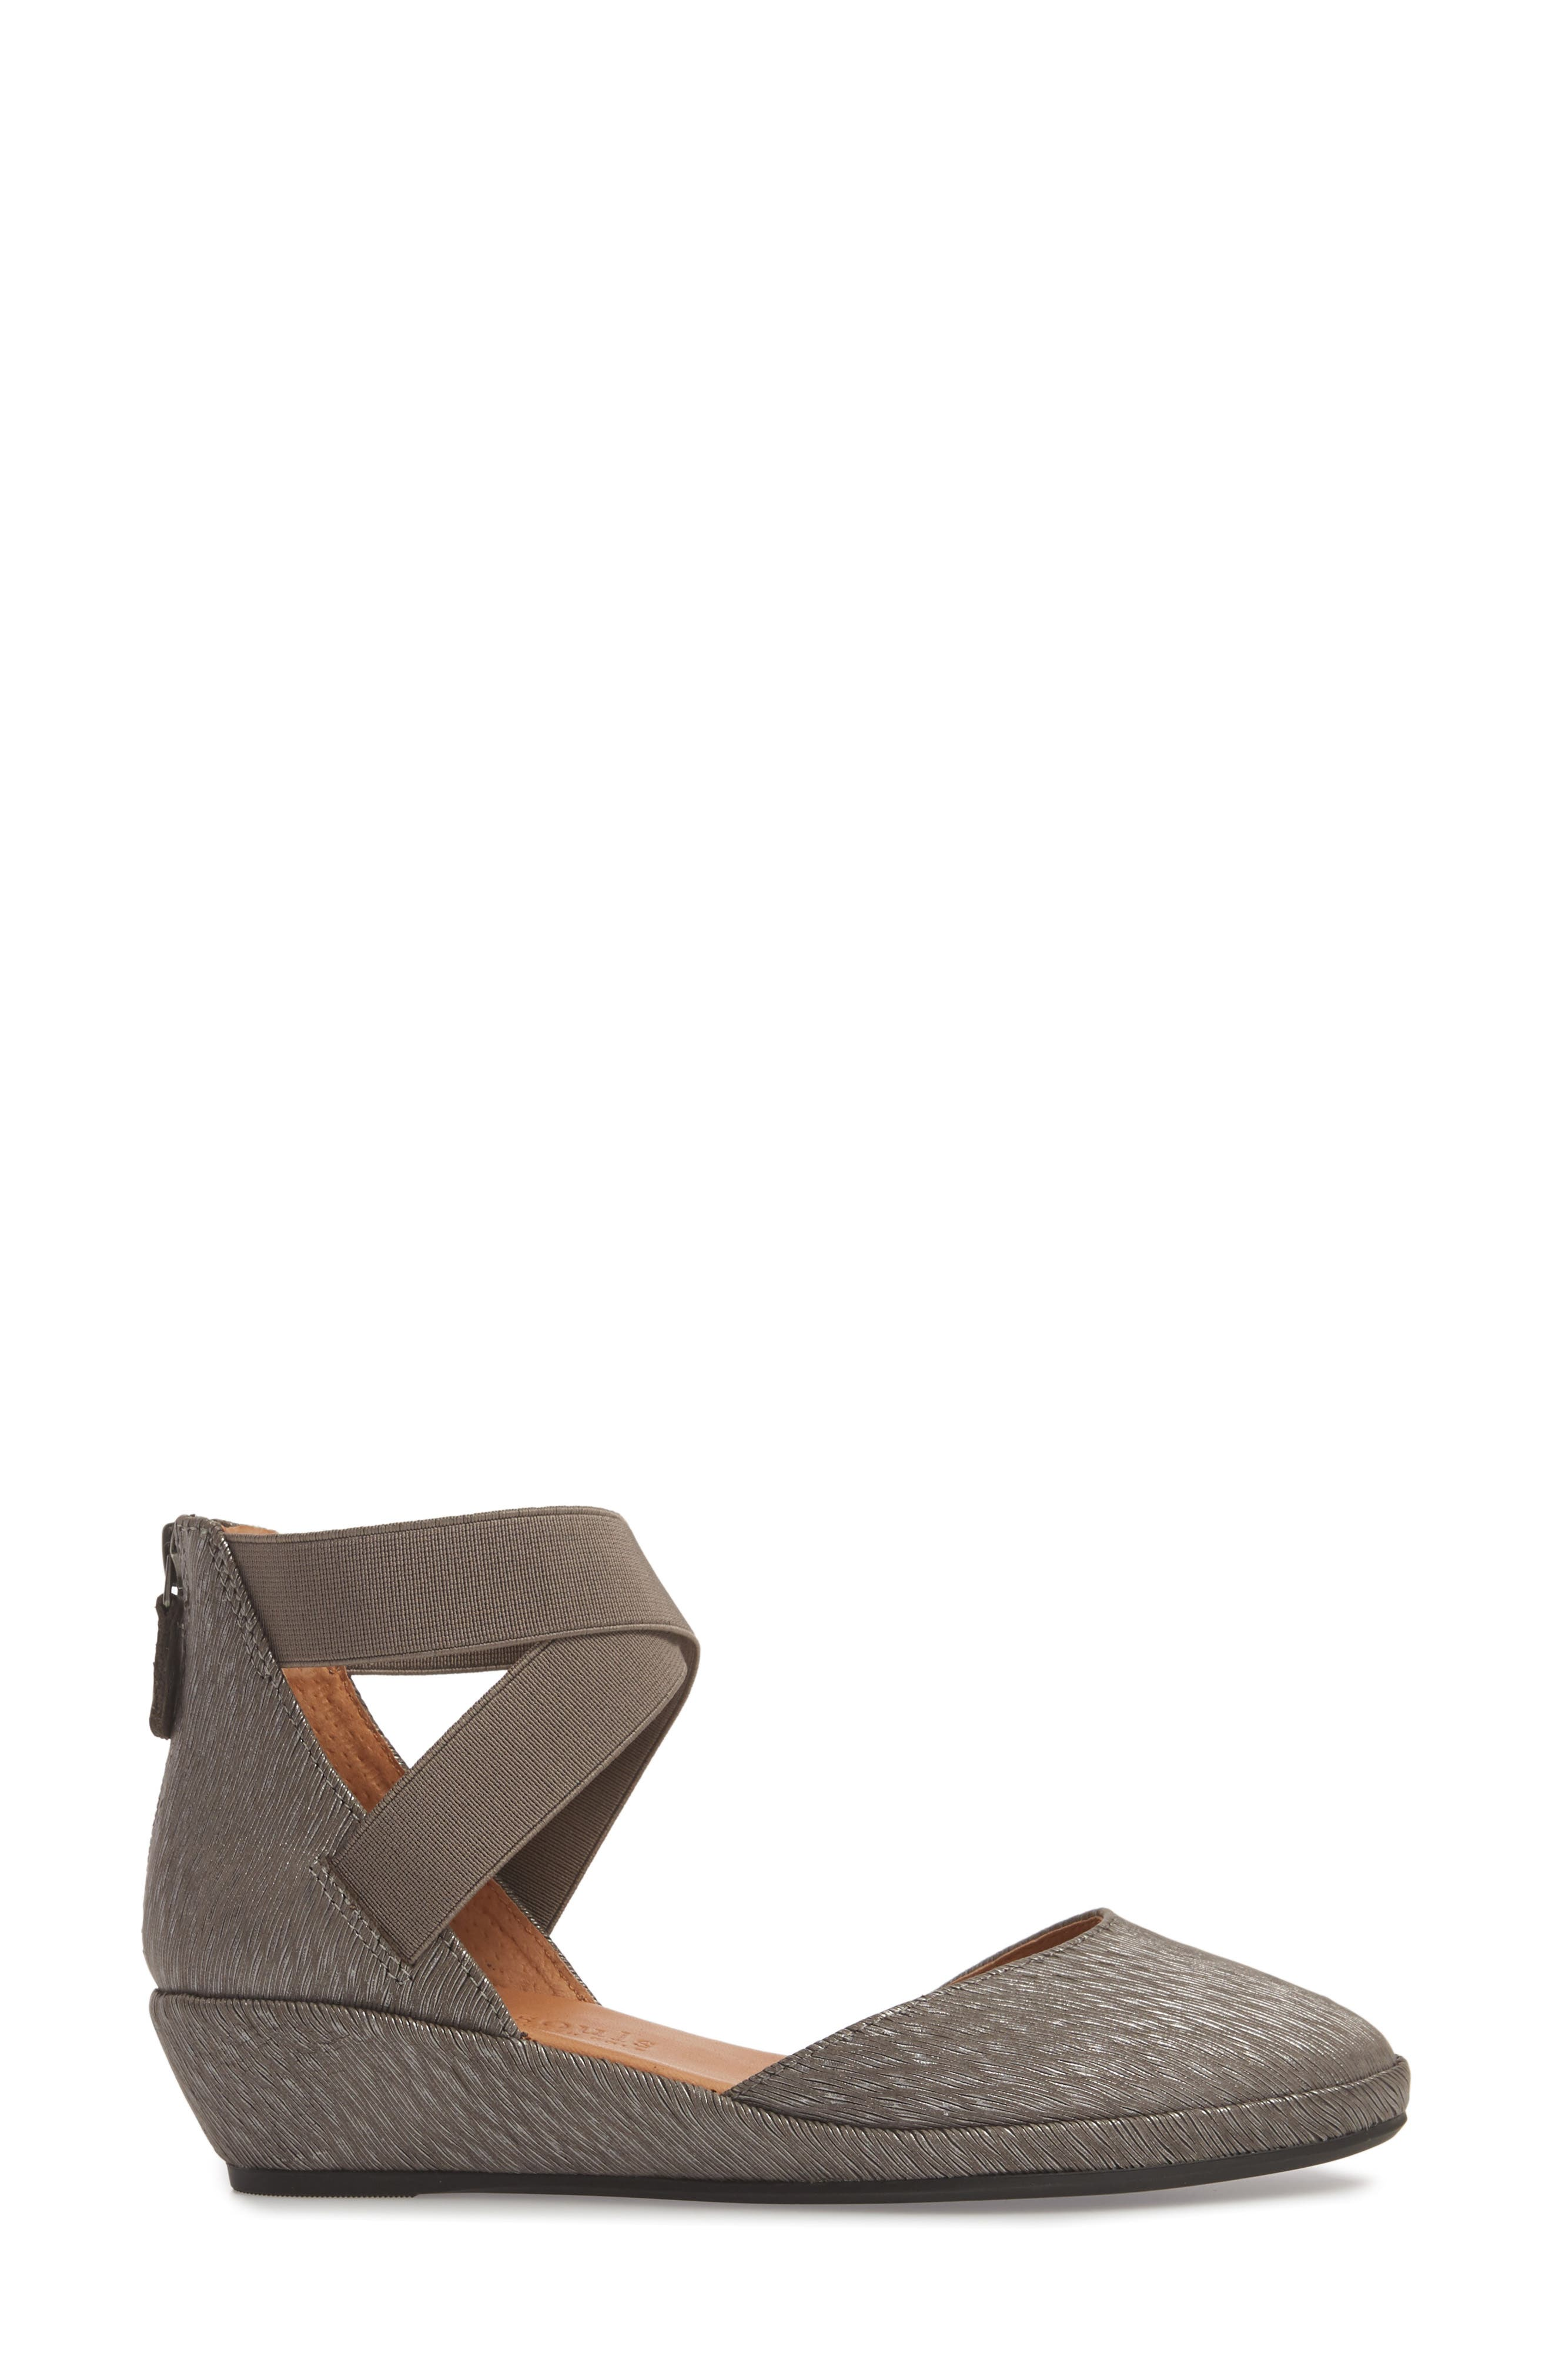 by Kenneth Cole 'Noa' Elastic Strap d'Orsay Sandal,                             Alternate thumbnail 3, color,                             Ash Embossed Leather